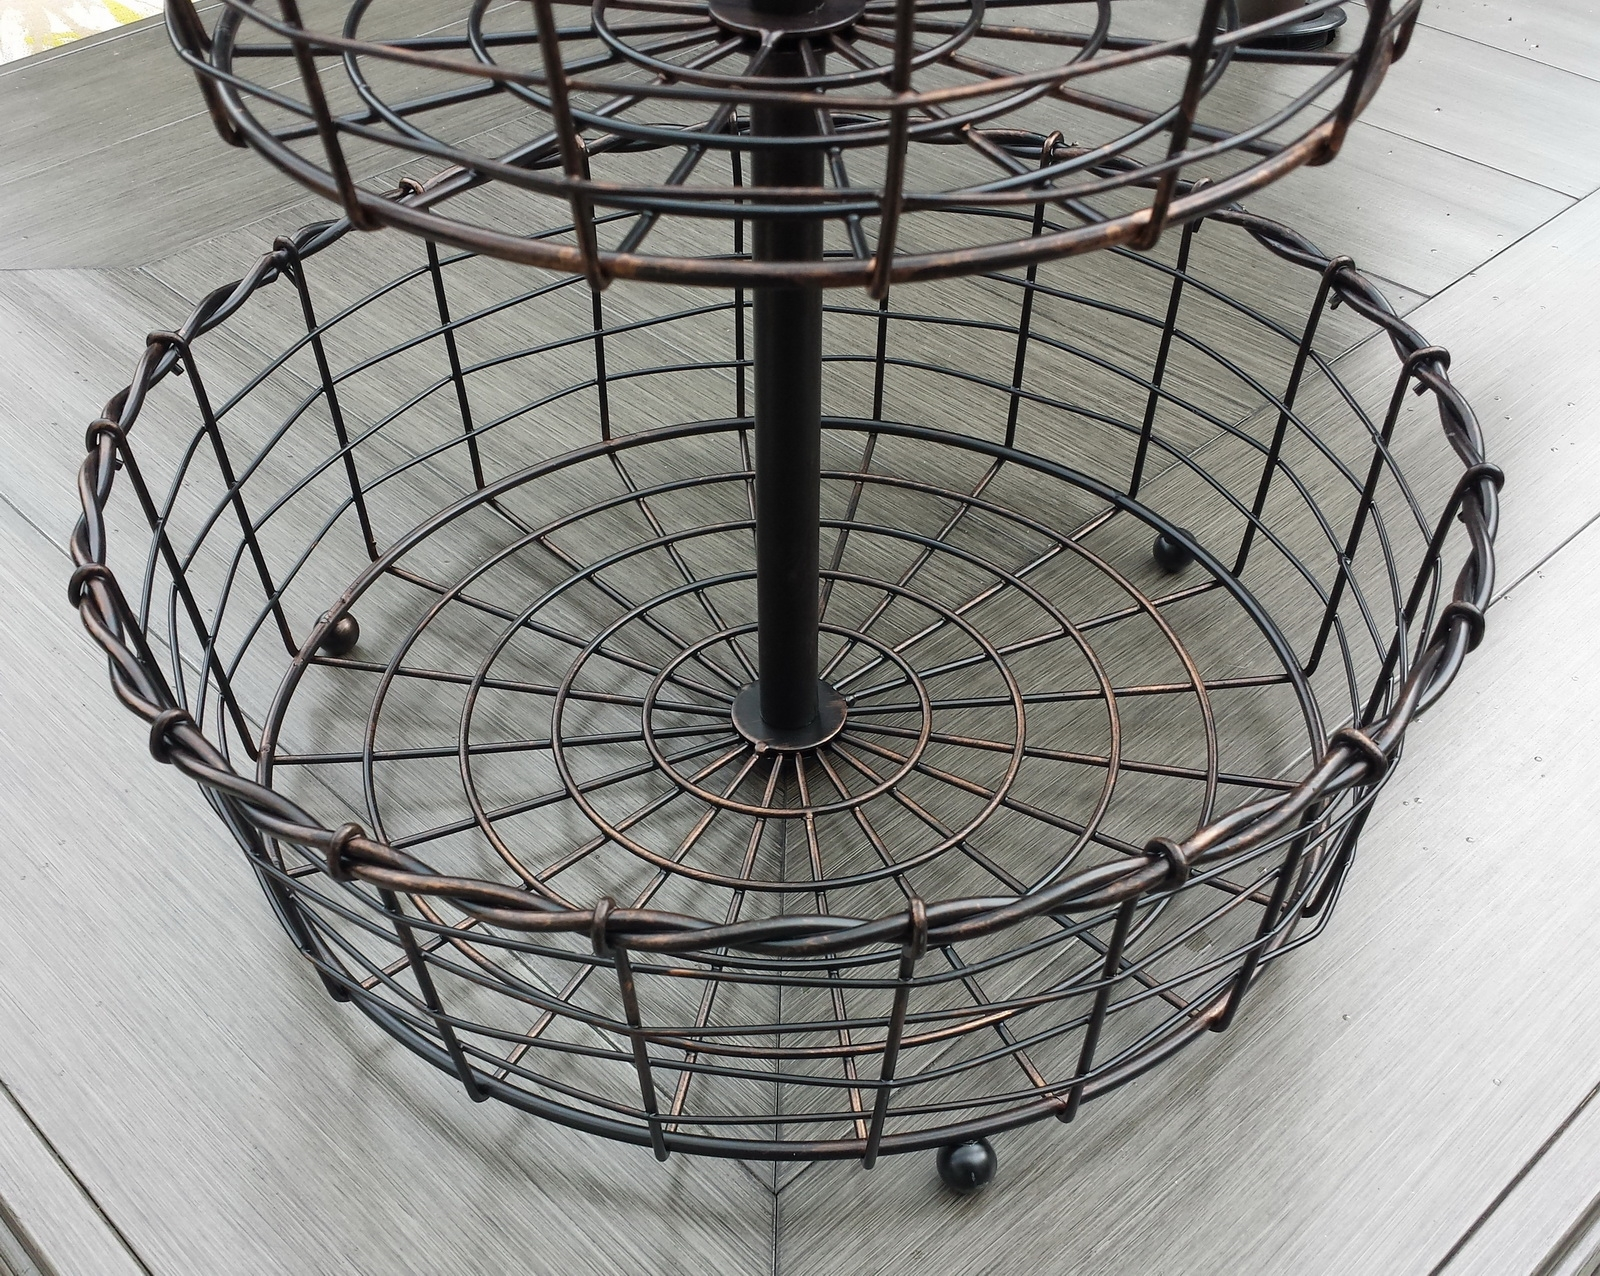 2 Tier Wrought Iron Fruit Basket Display Stand